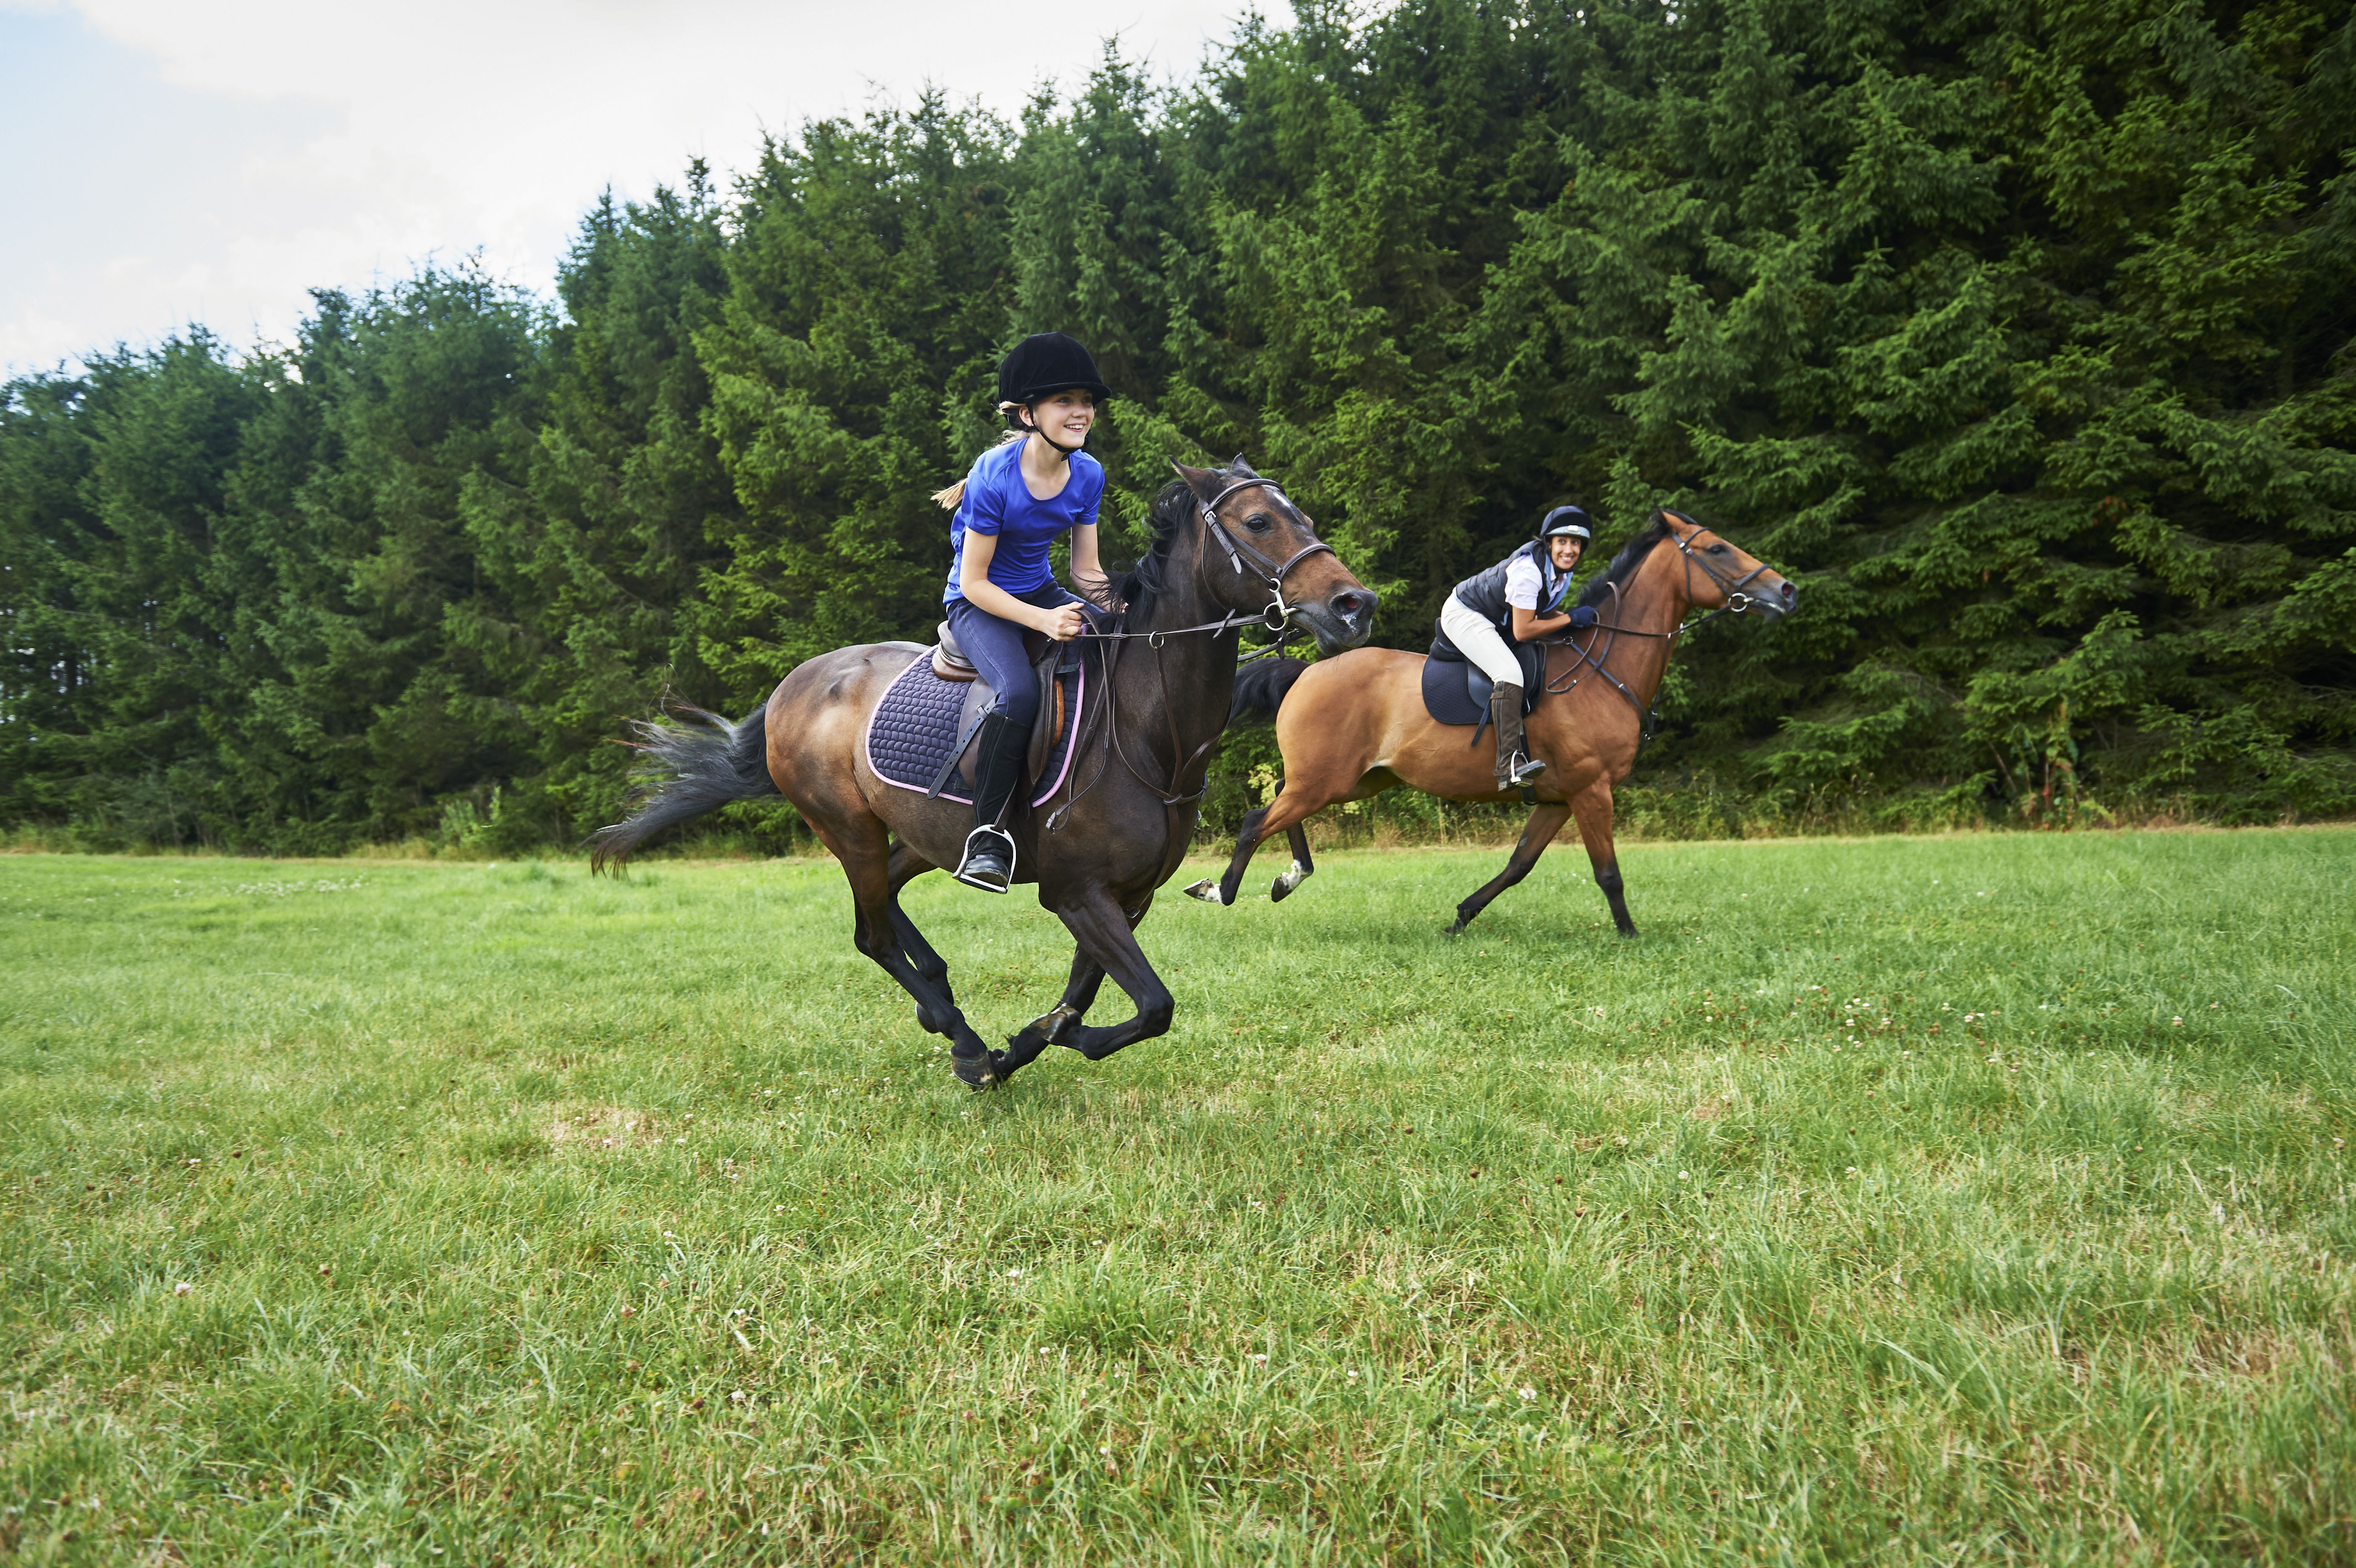 Safety Tips For Horseback Riders While Riding